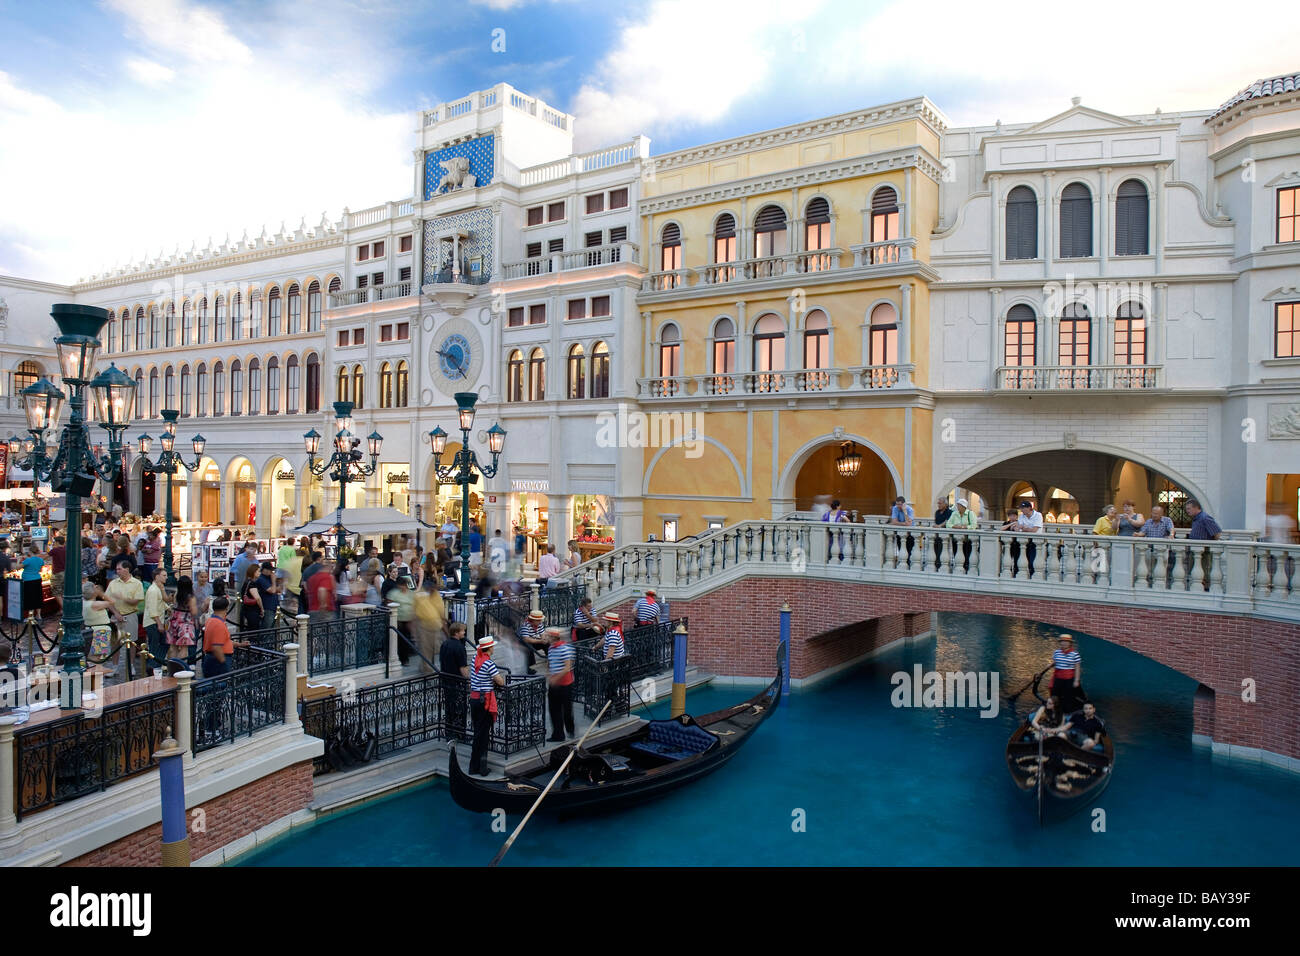 Grand Canal at the Venetian Hotel in Las Vegas, Nevada, USA - Stock Image